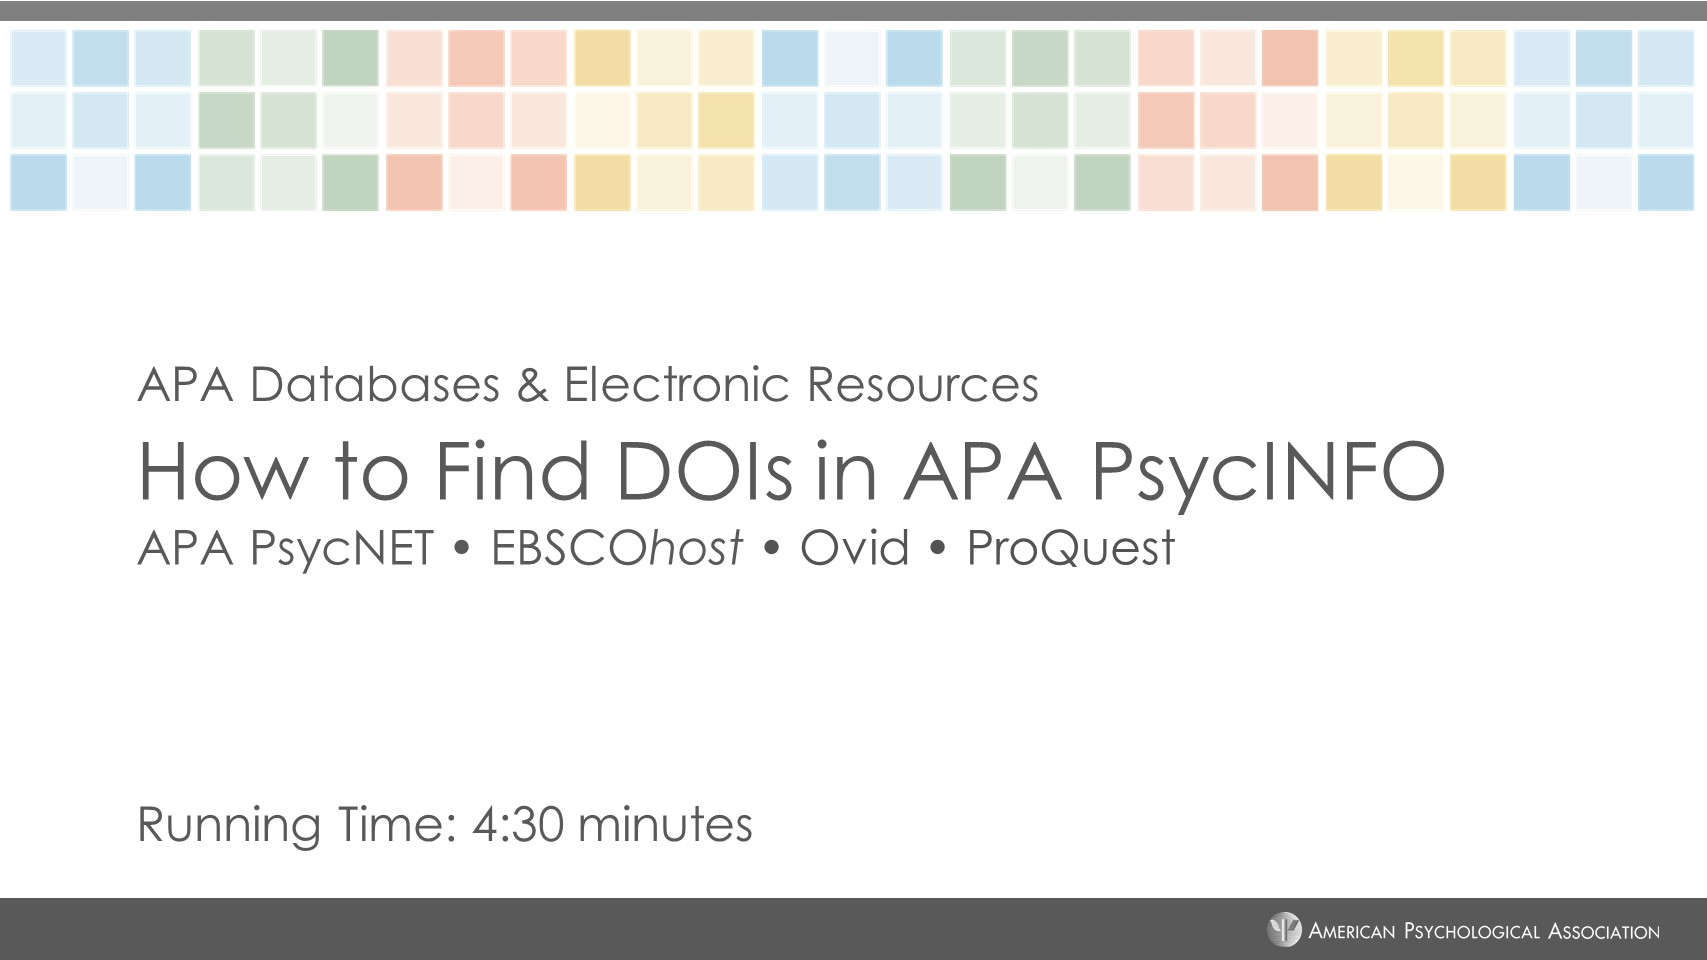 Screenshot of How to Find DOIs in APA PsycINFO tutorial.